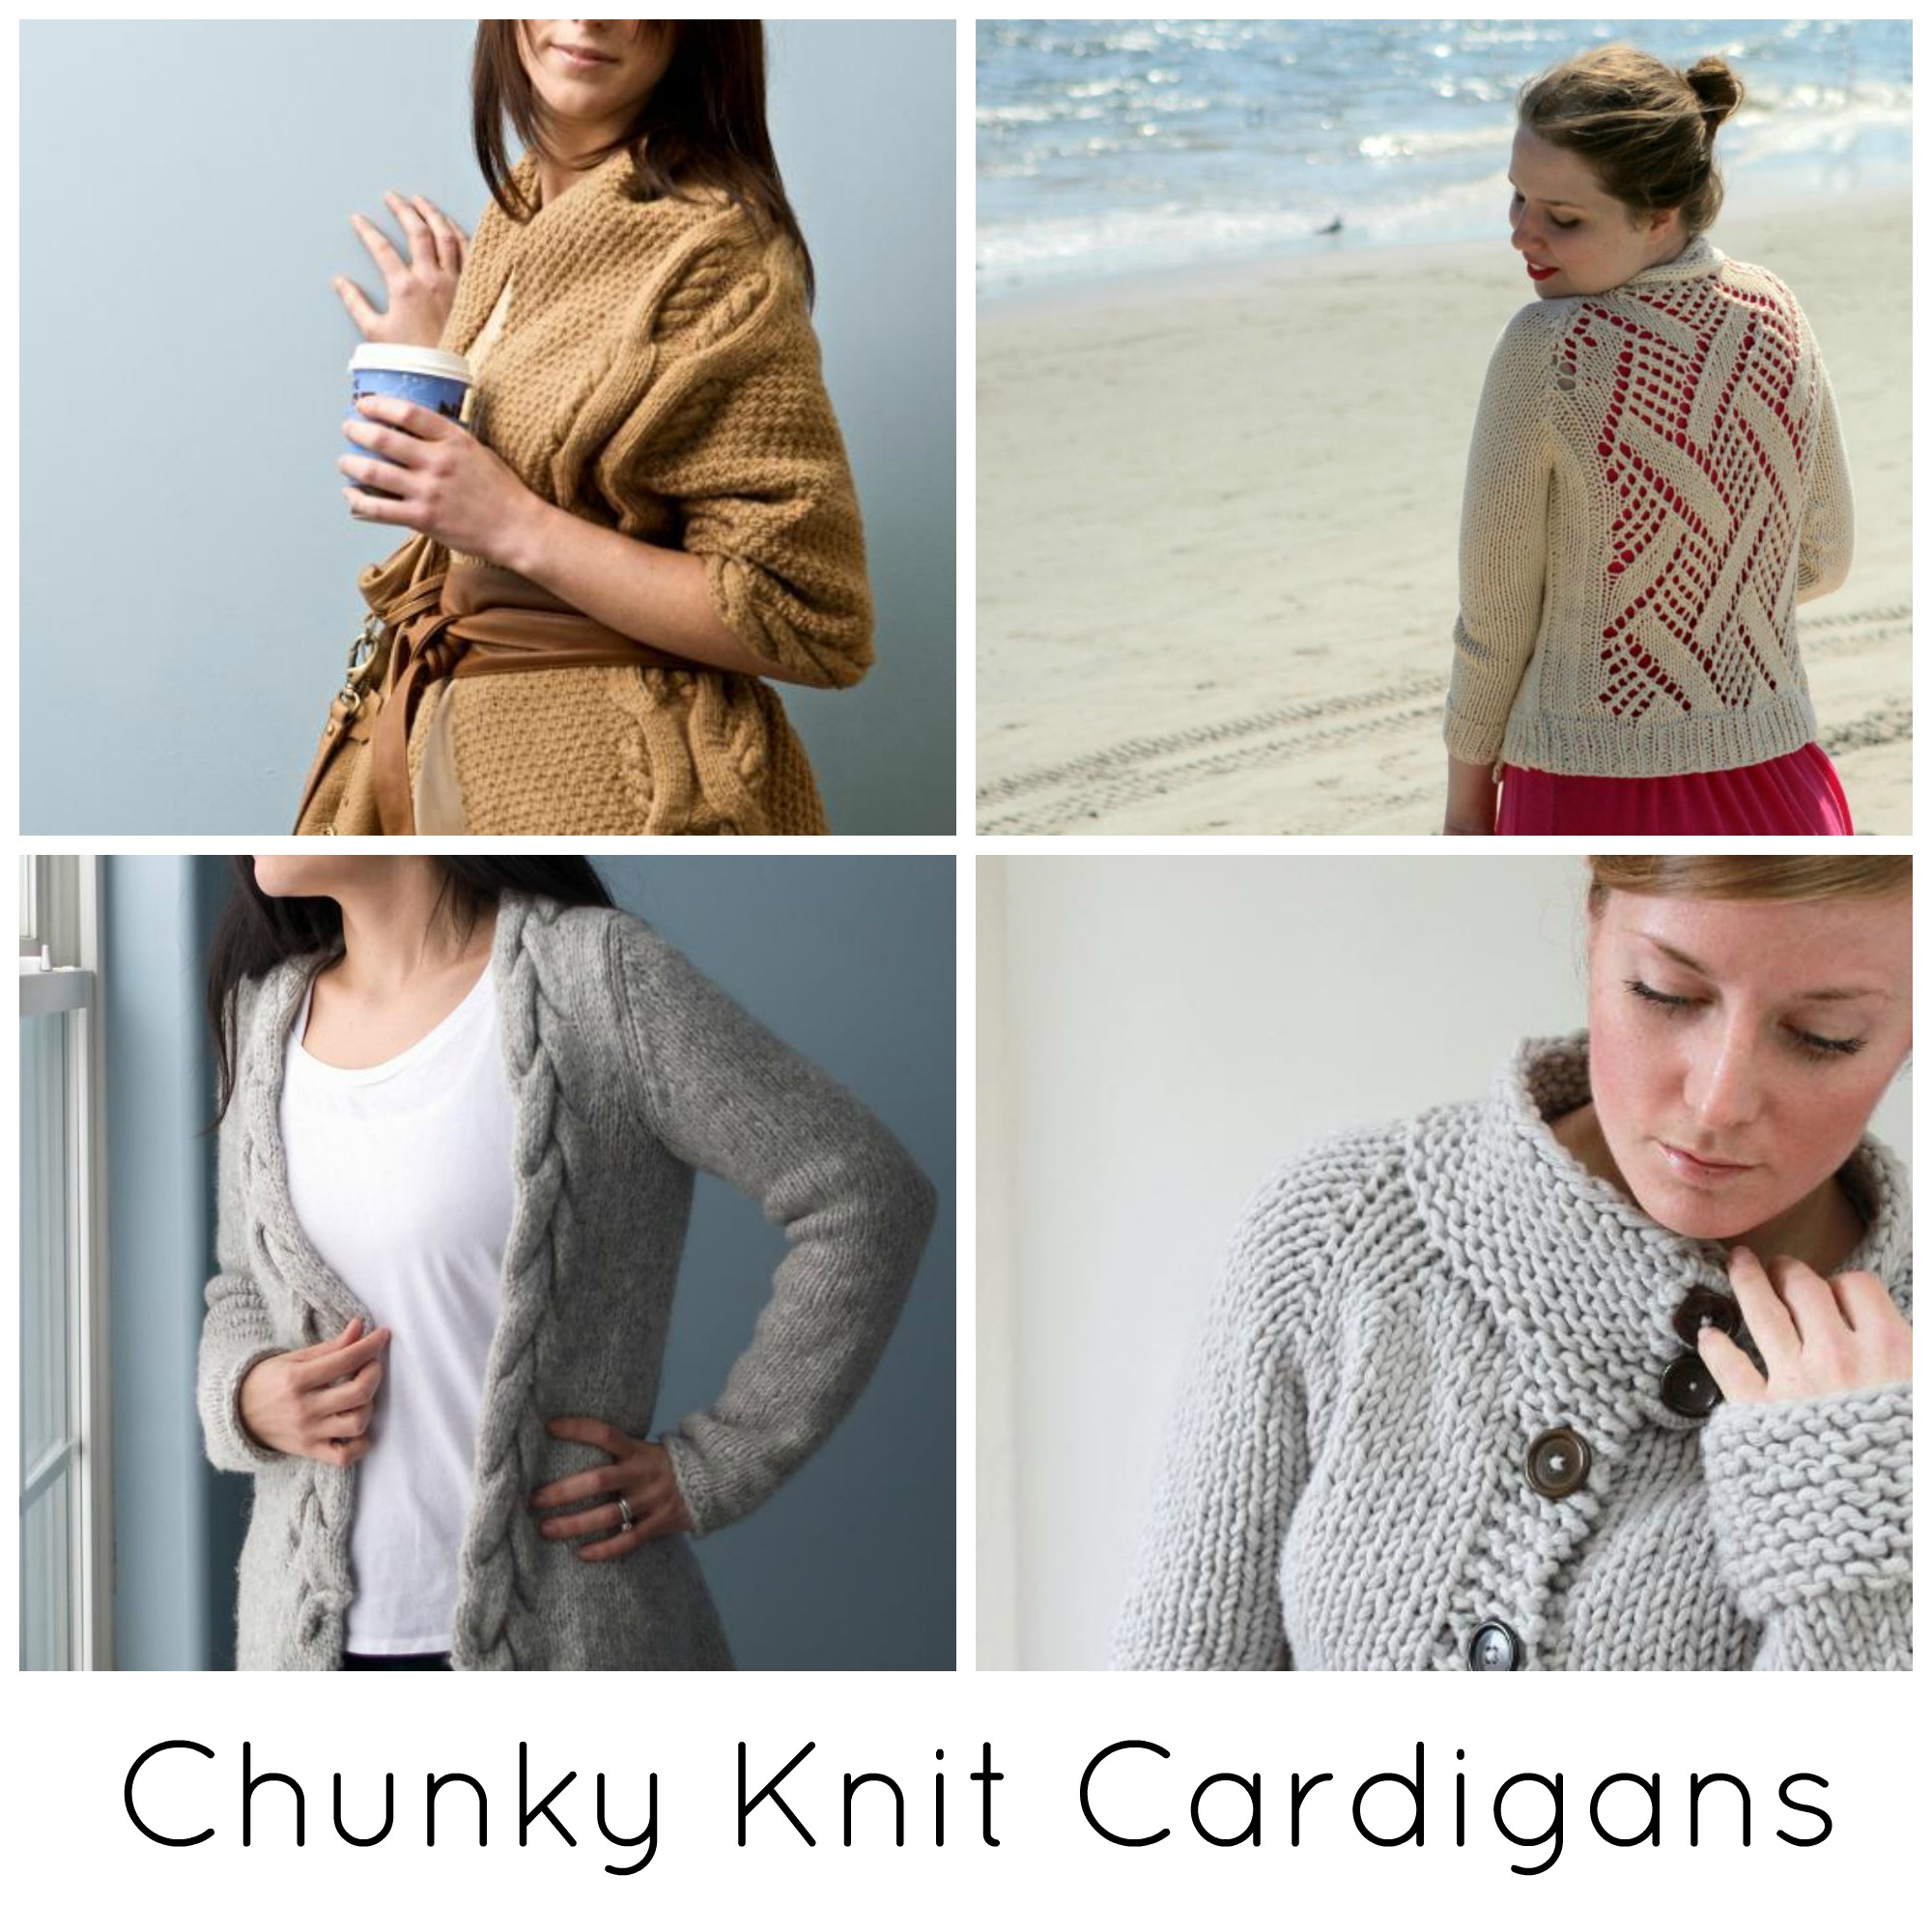 Knitted Jacket Patterns The Coziest Chunky Knit Cardigan Patterns Ever